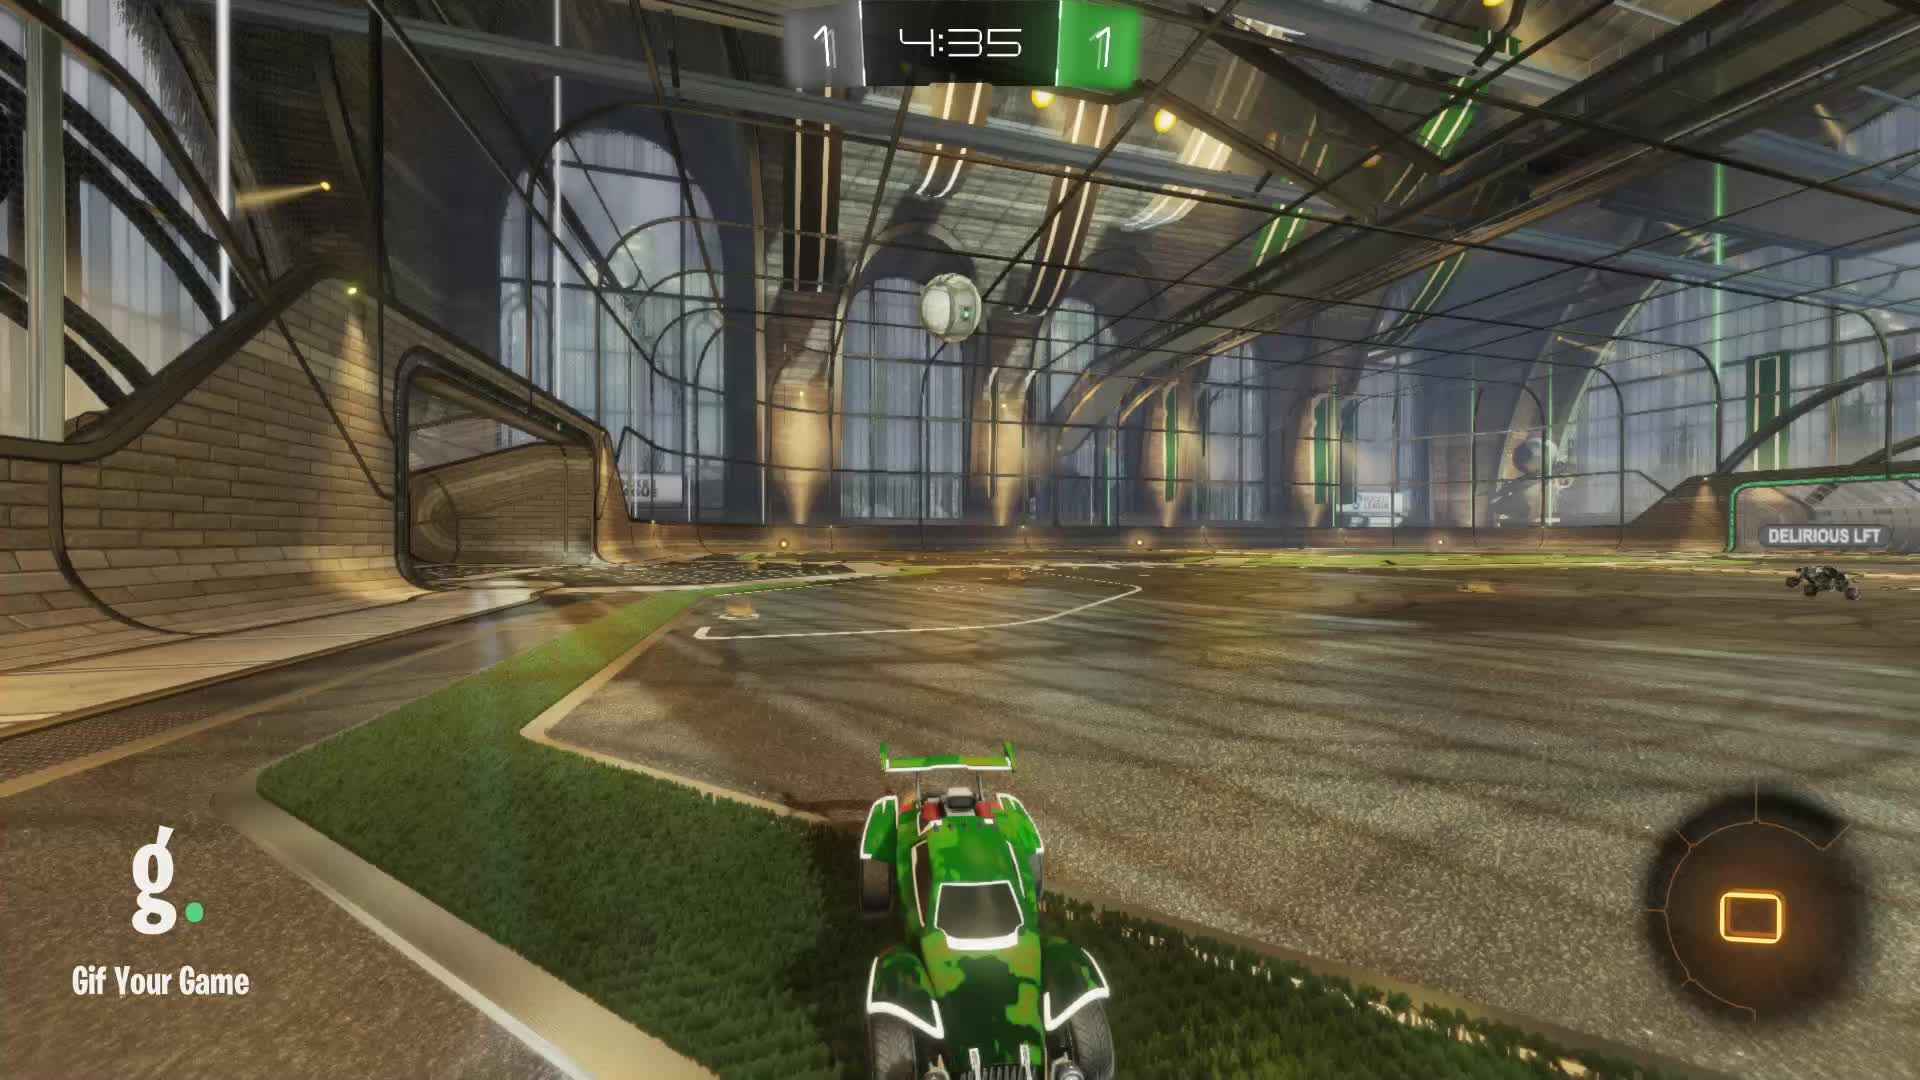 Gif Your Game, GifYourGame, Goal, Linux Cow | Ceiling shots only?, Rocket League, RocketLeague, Goal 3: Linux Cow | Ceiling shots only? GIFs